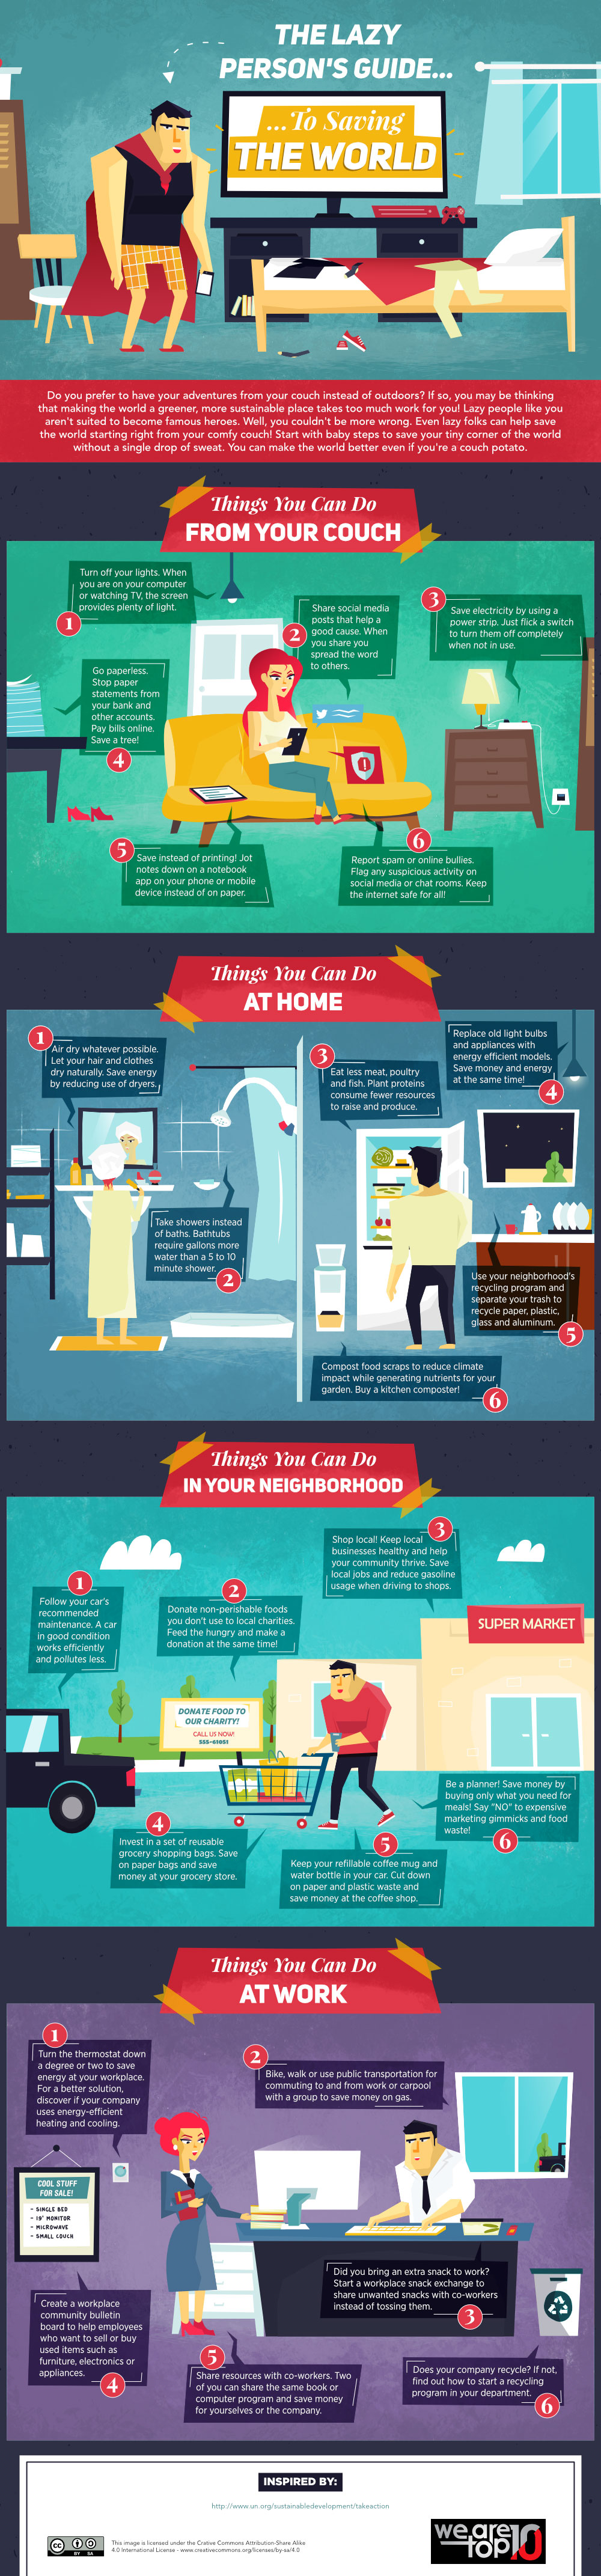 Lazy Persons Guide to Saving the World Infographic on Social Responsibility